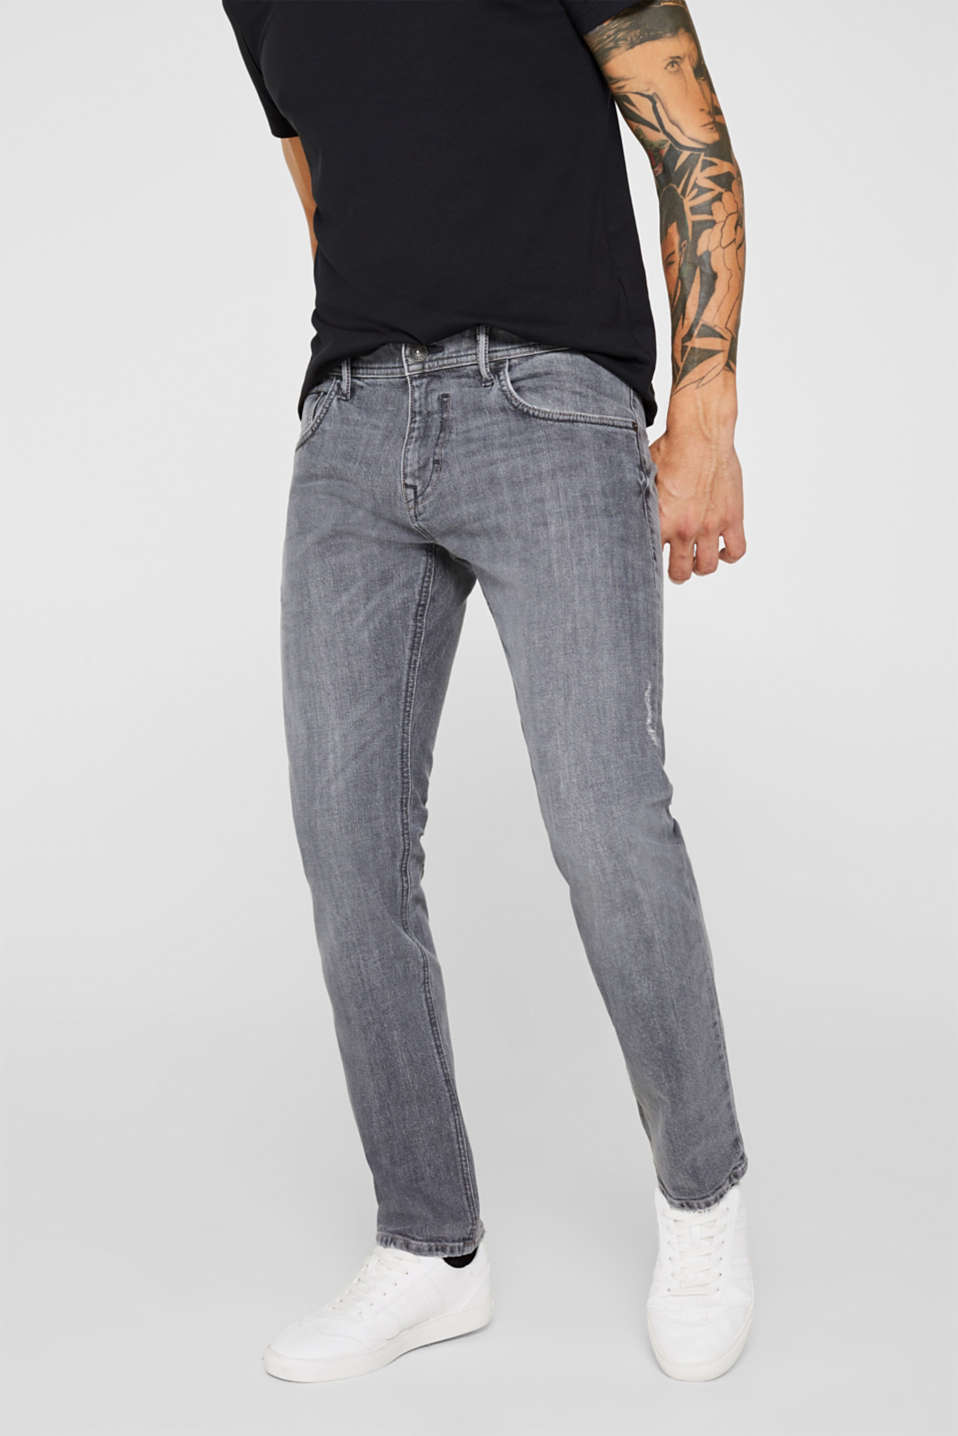 Esprit - Stretch-Denim mit Washed Out-Effekt